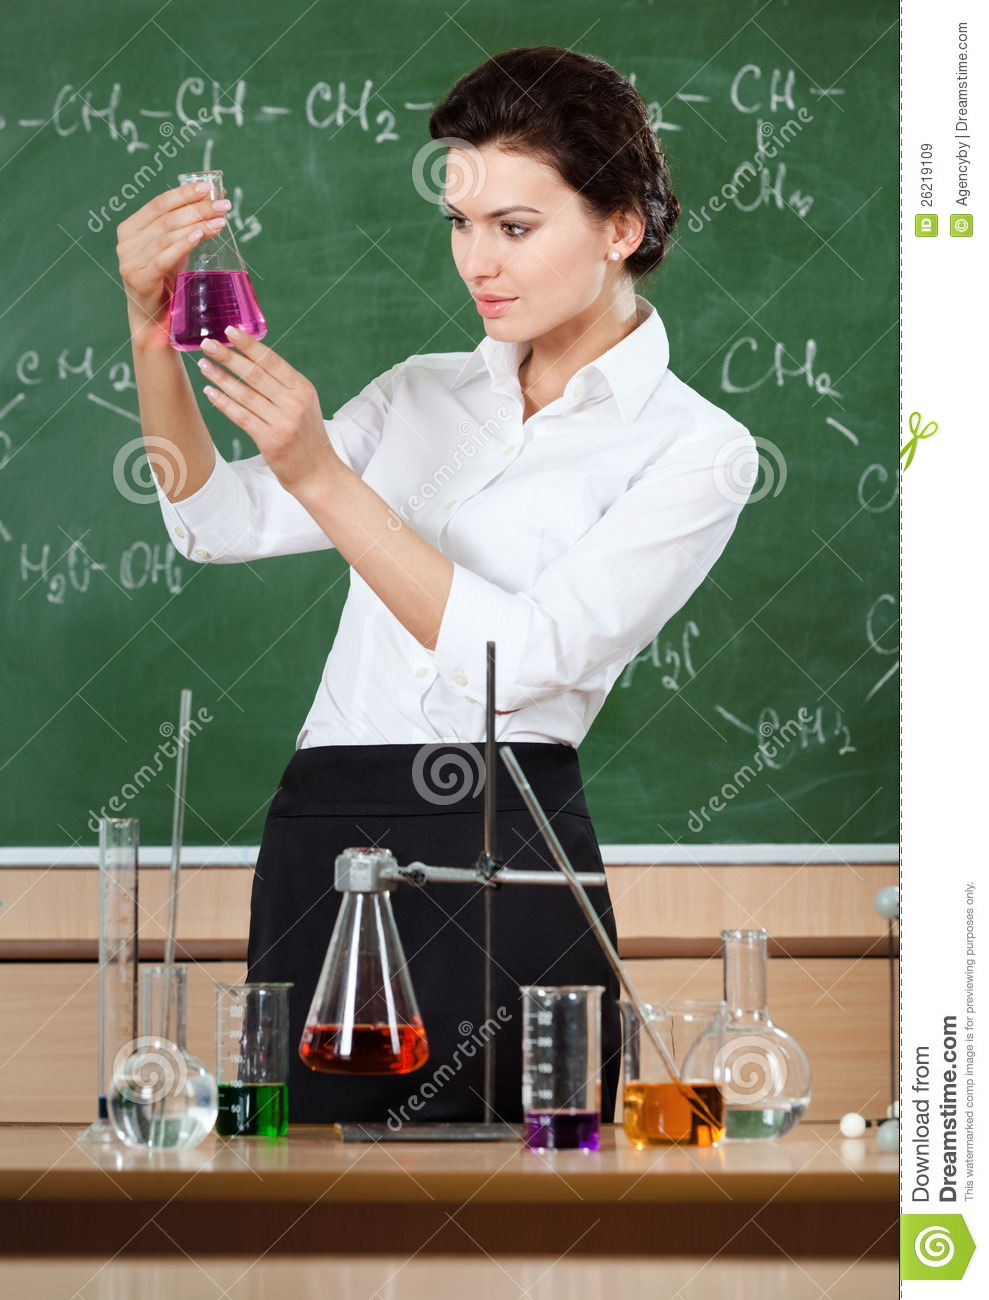 Smiley Chemistry Teacher Examines Conical Flask Royalty Free Stock Images  Image 26219109